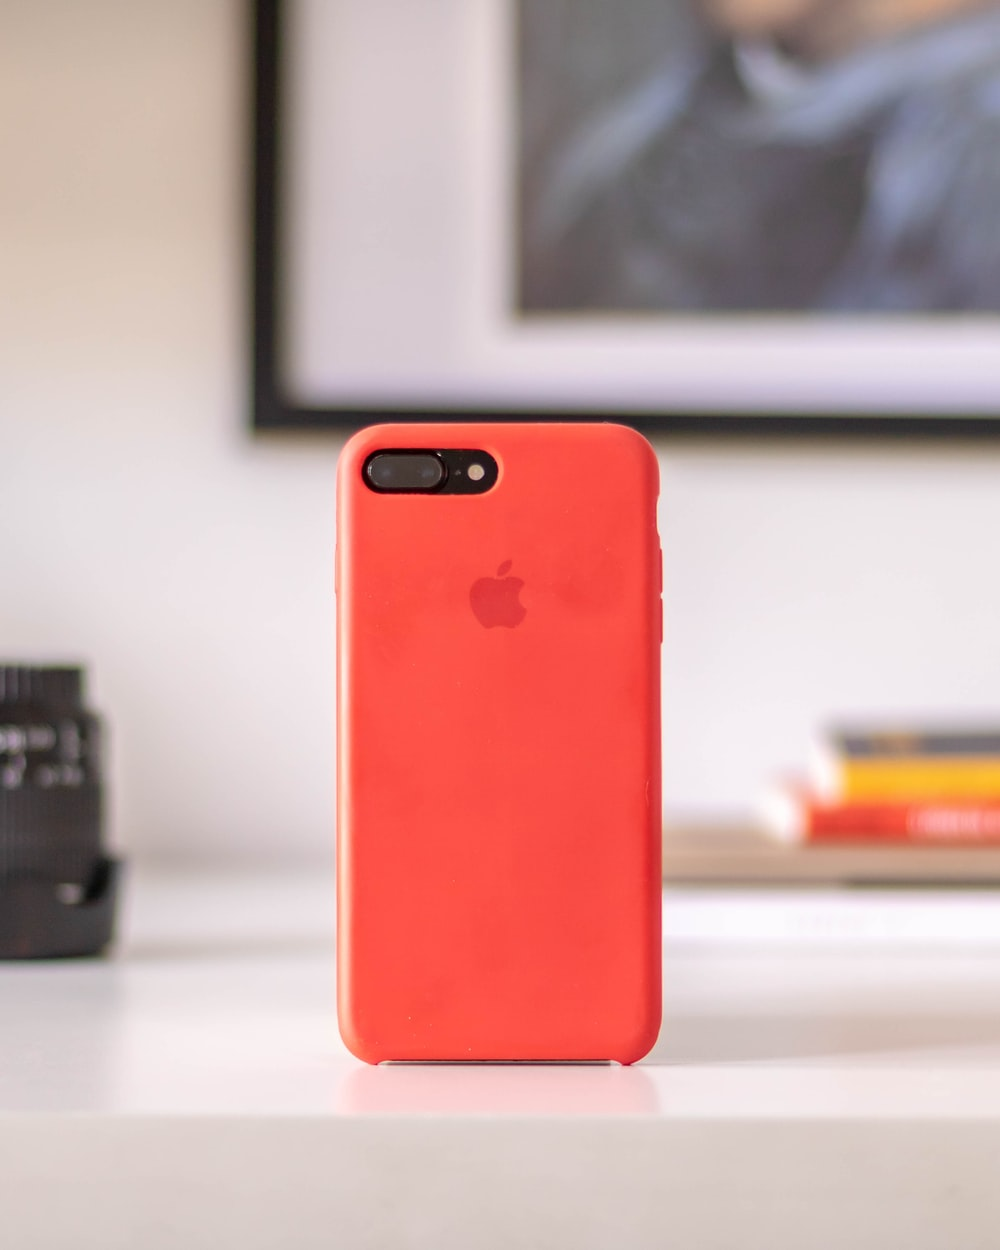 post-2016 iPhone with red case